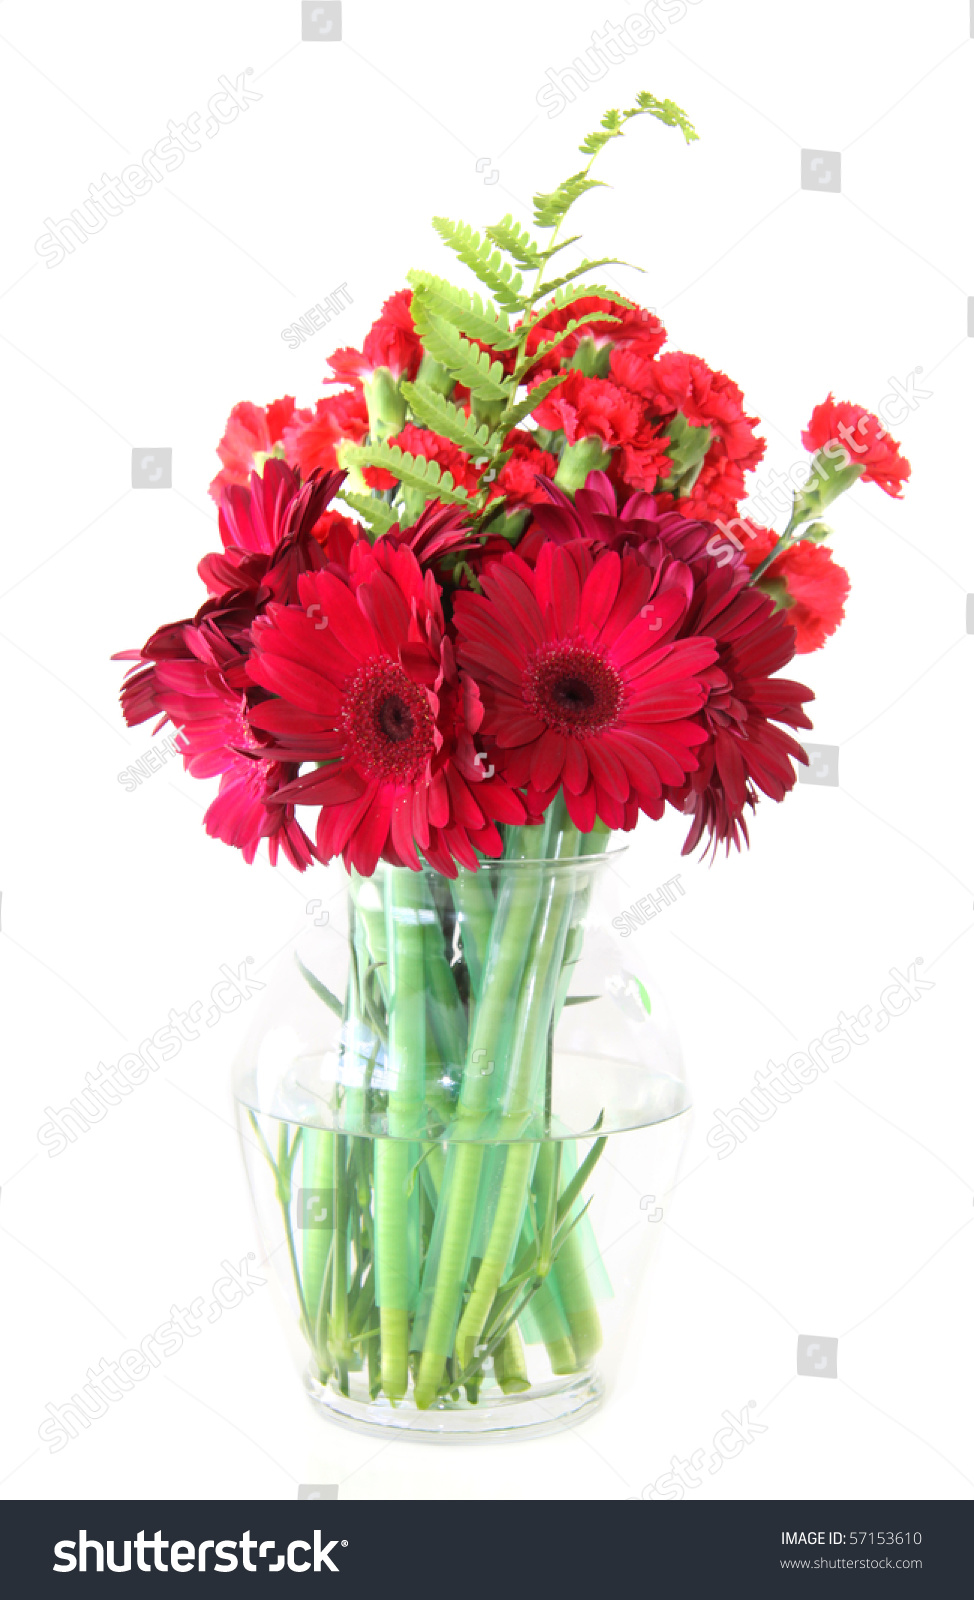 Beautiful Red Colored Flowers Glass Vase Stock Photo 57153610 ...